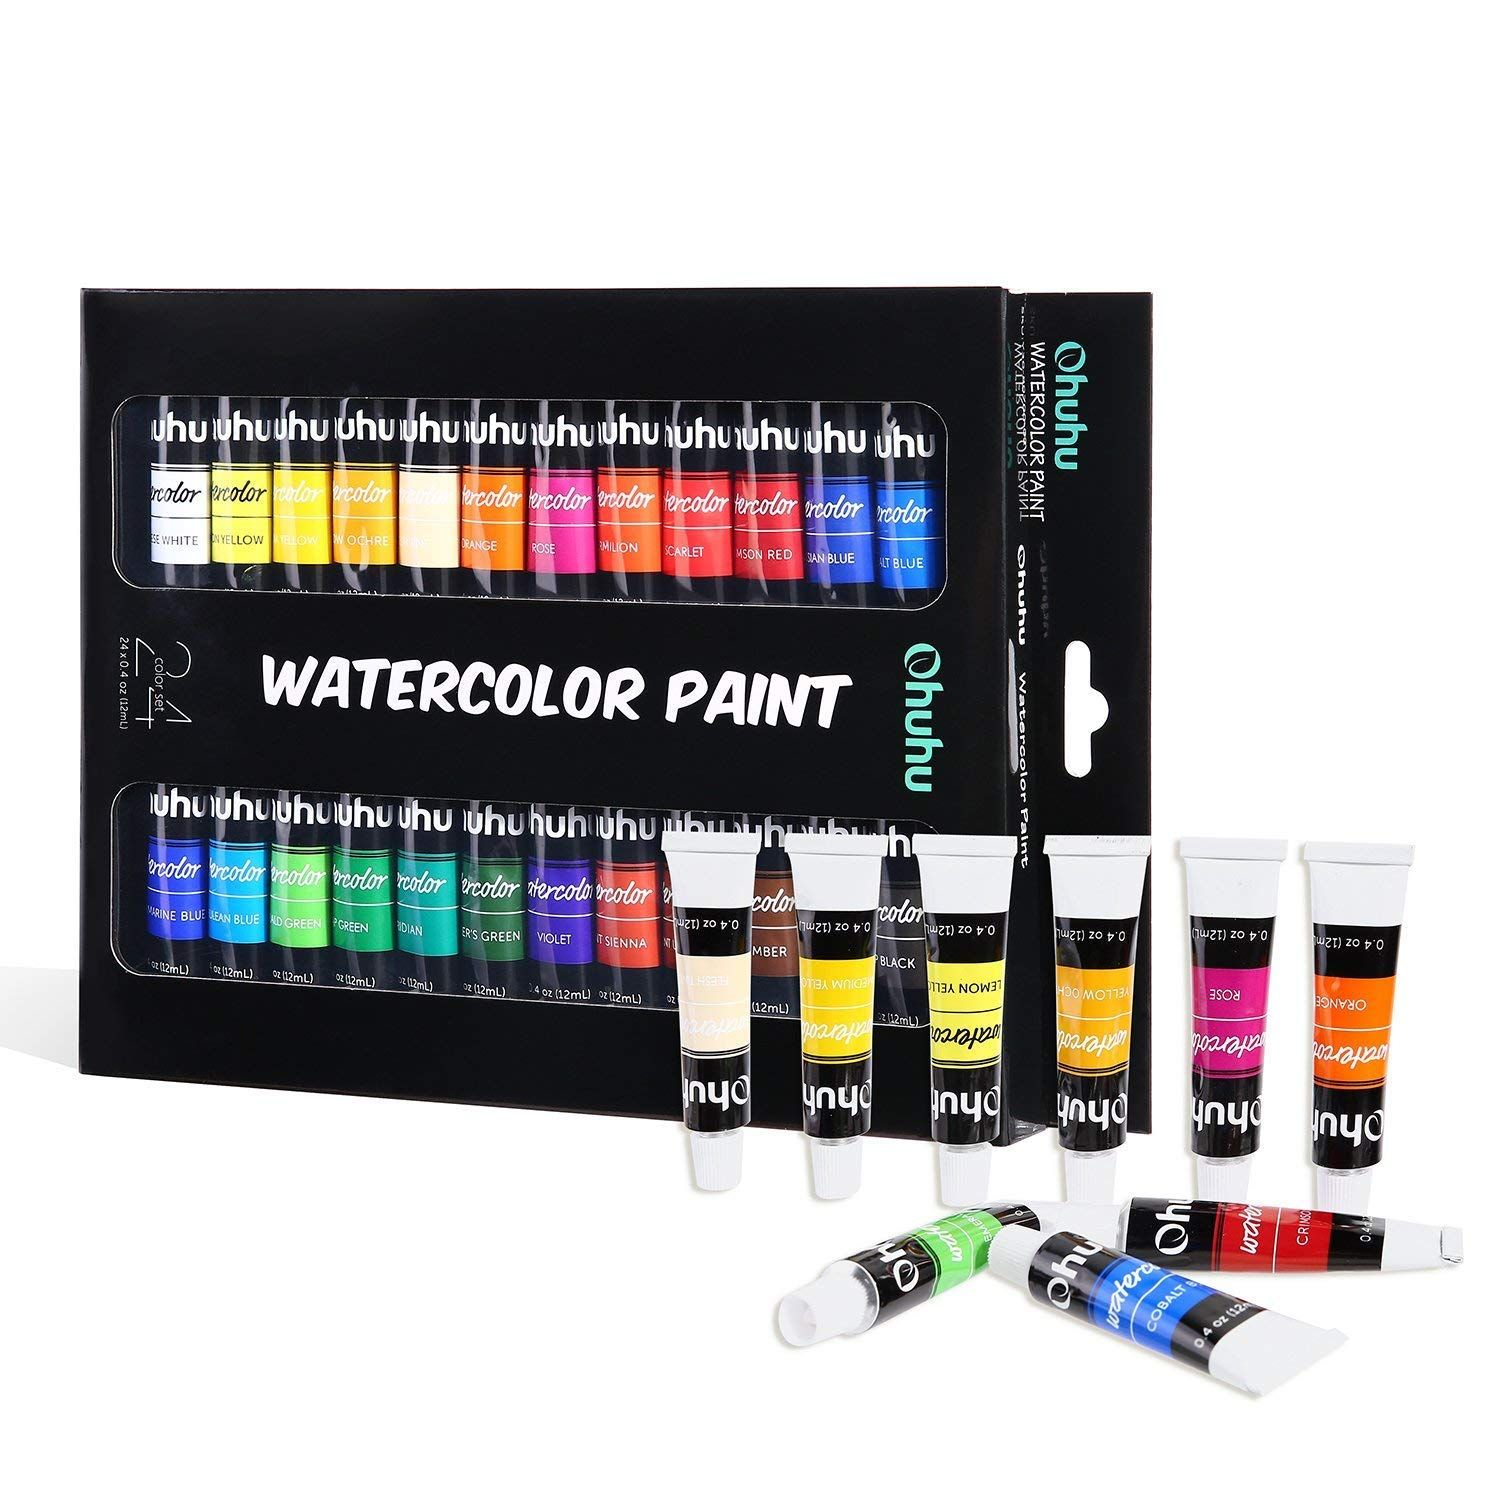 Watercolor Paint Tubes 24 Water Colors Ohuhu Art Watercolors